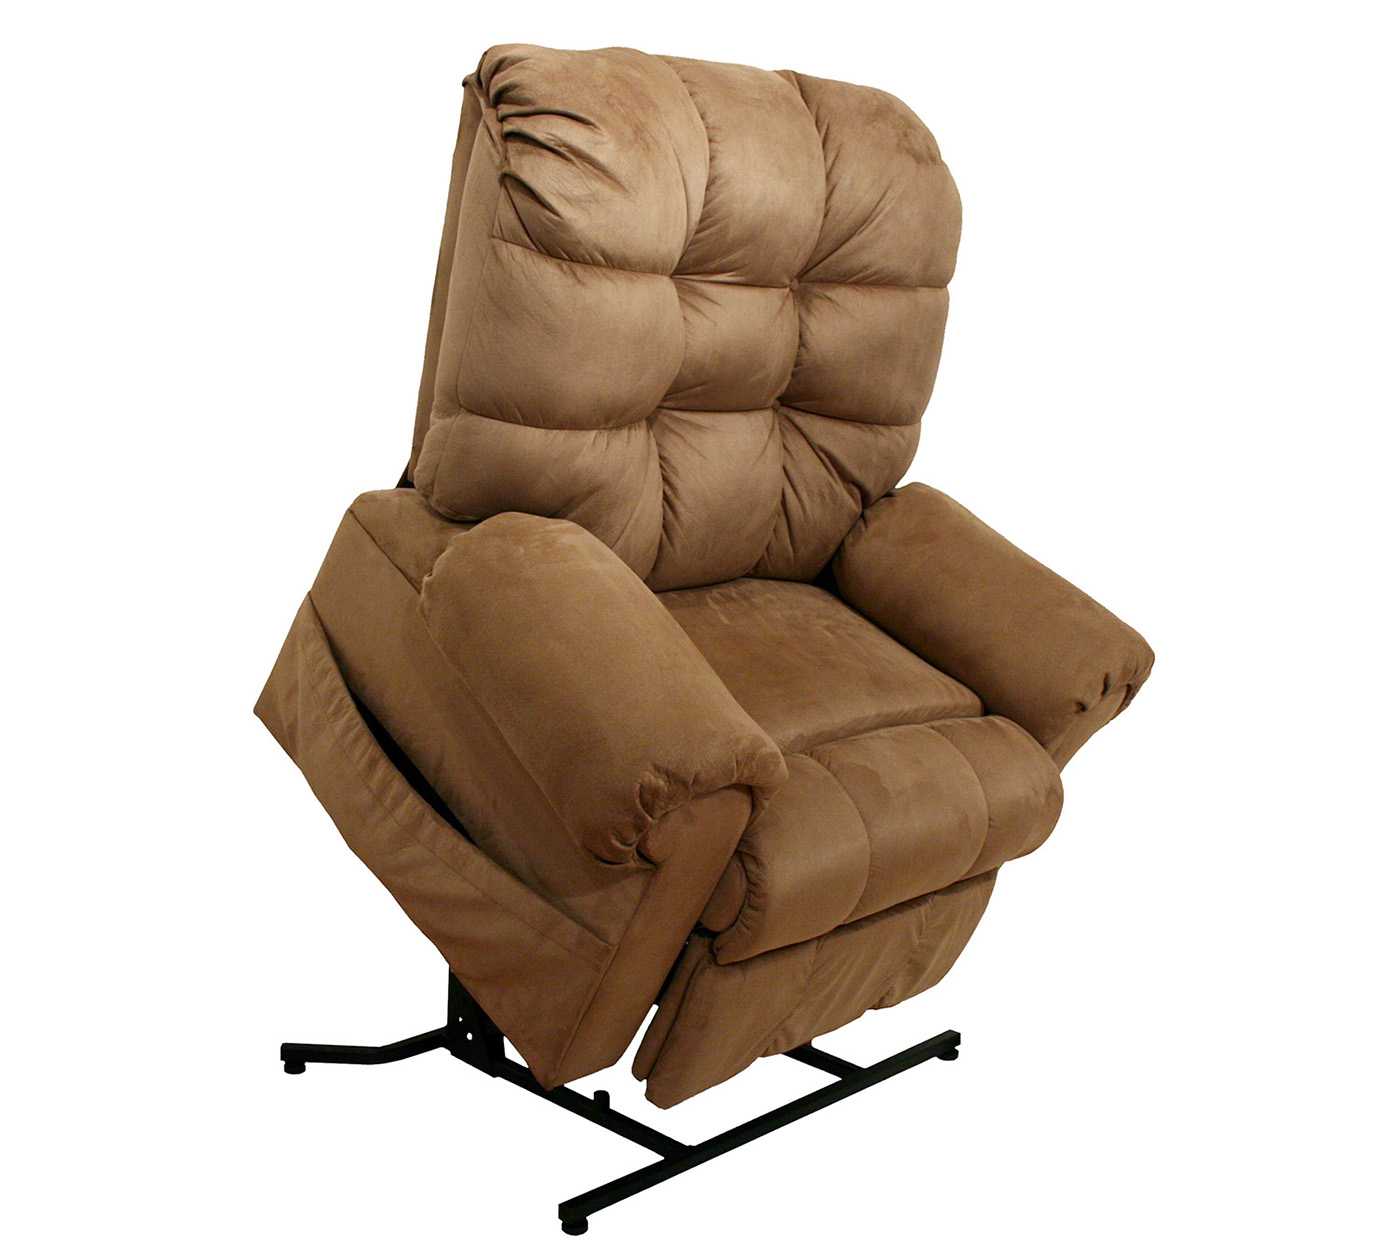 lifts lift full chair duty liftchair catalog heavy site electric chairs size with find of push seat slider local elderly risedale stores leather self rising best awfco recliner recliners up for